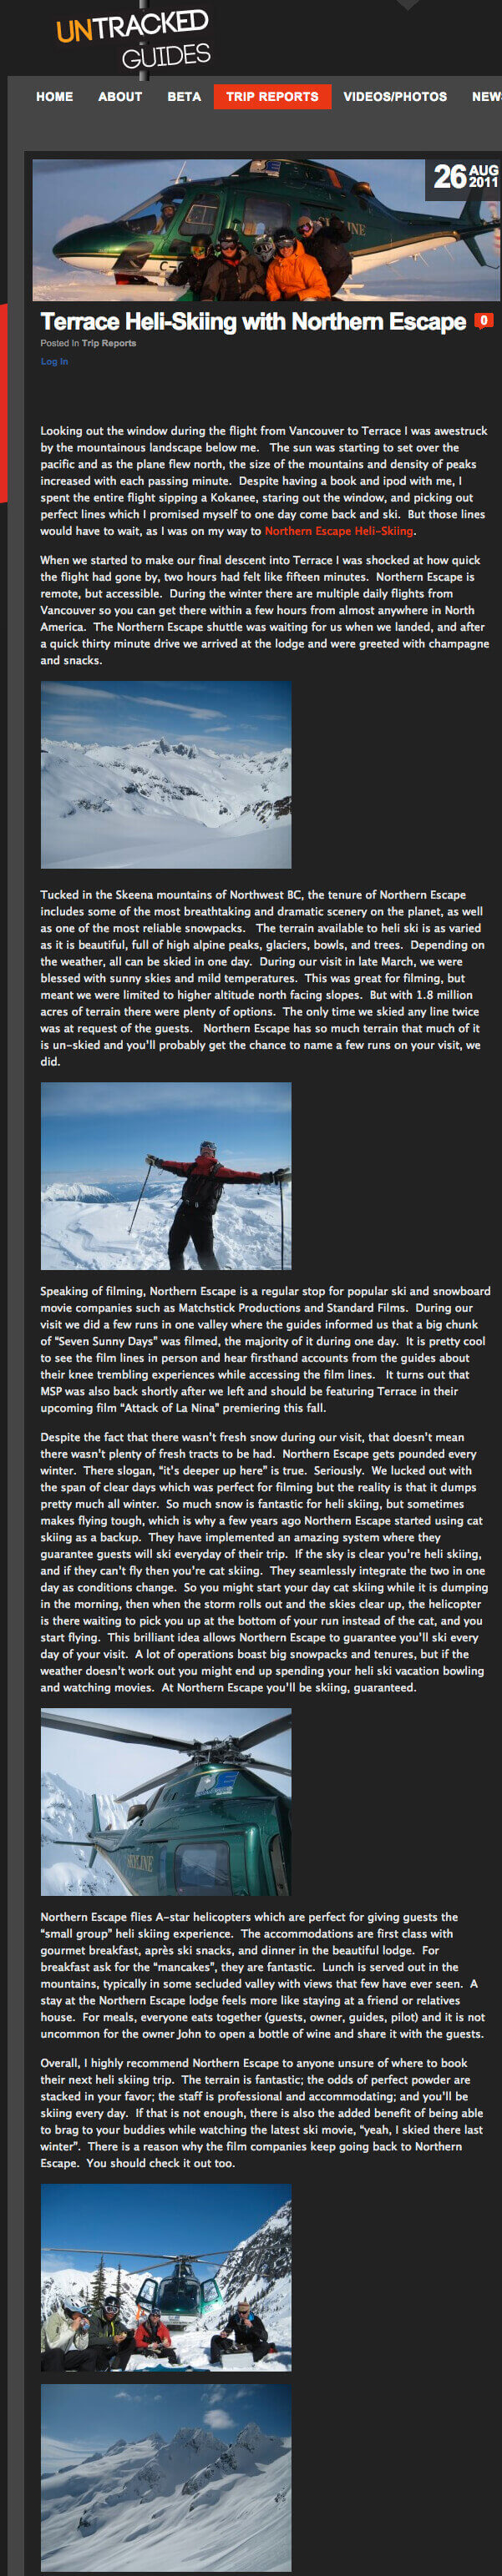 2011 Untracked Guides article- Terrace Heli Skiing